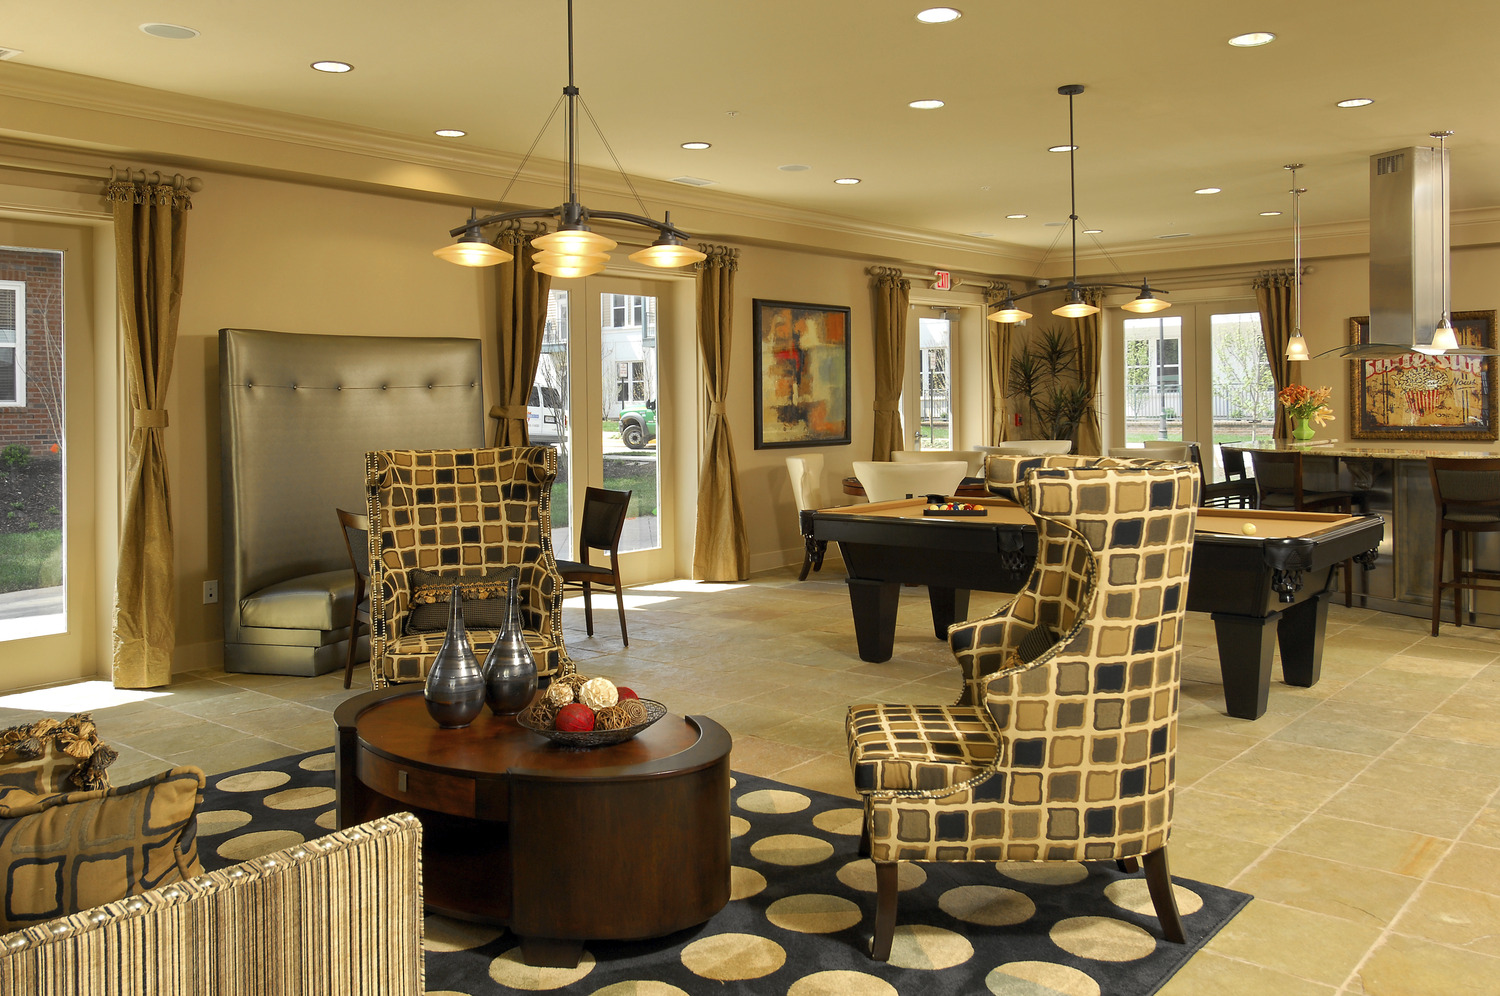 CBG builds Camden Monument Place, a 293 Class-A Homes with 75 Upgraded Homes in Fairfax, VA - Image #7